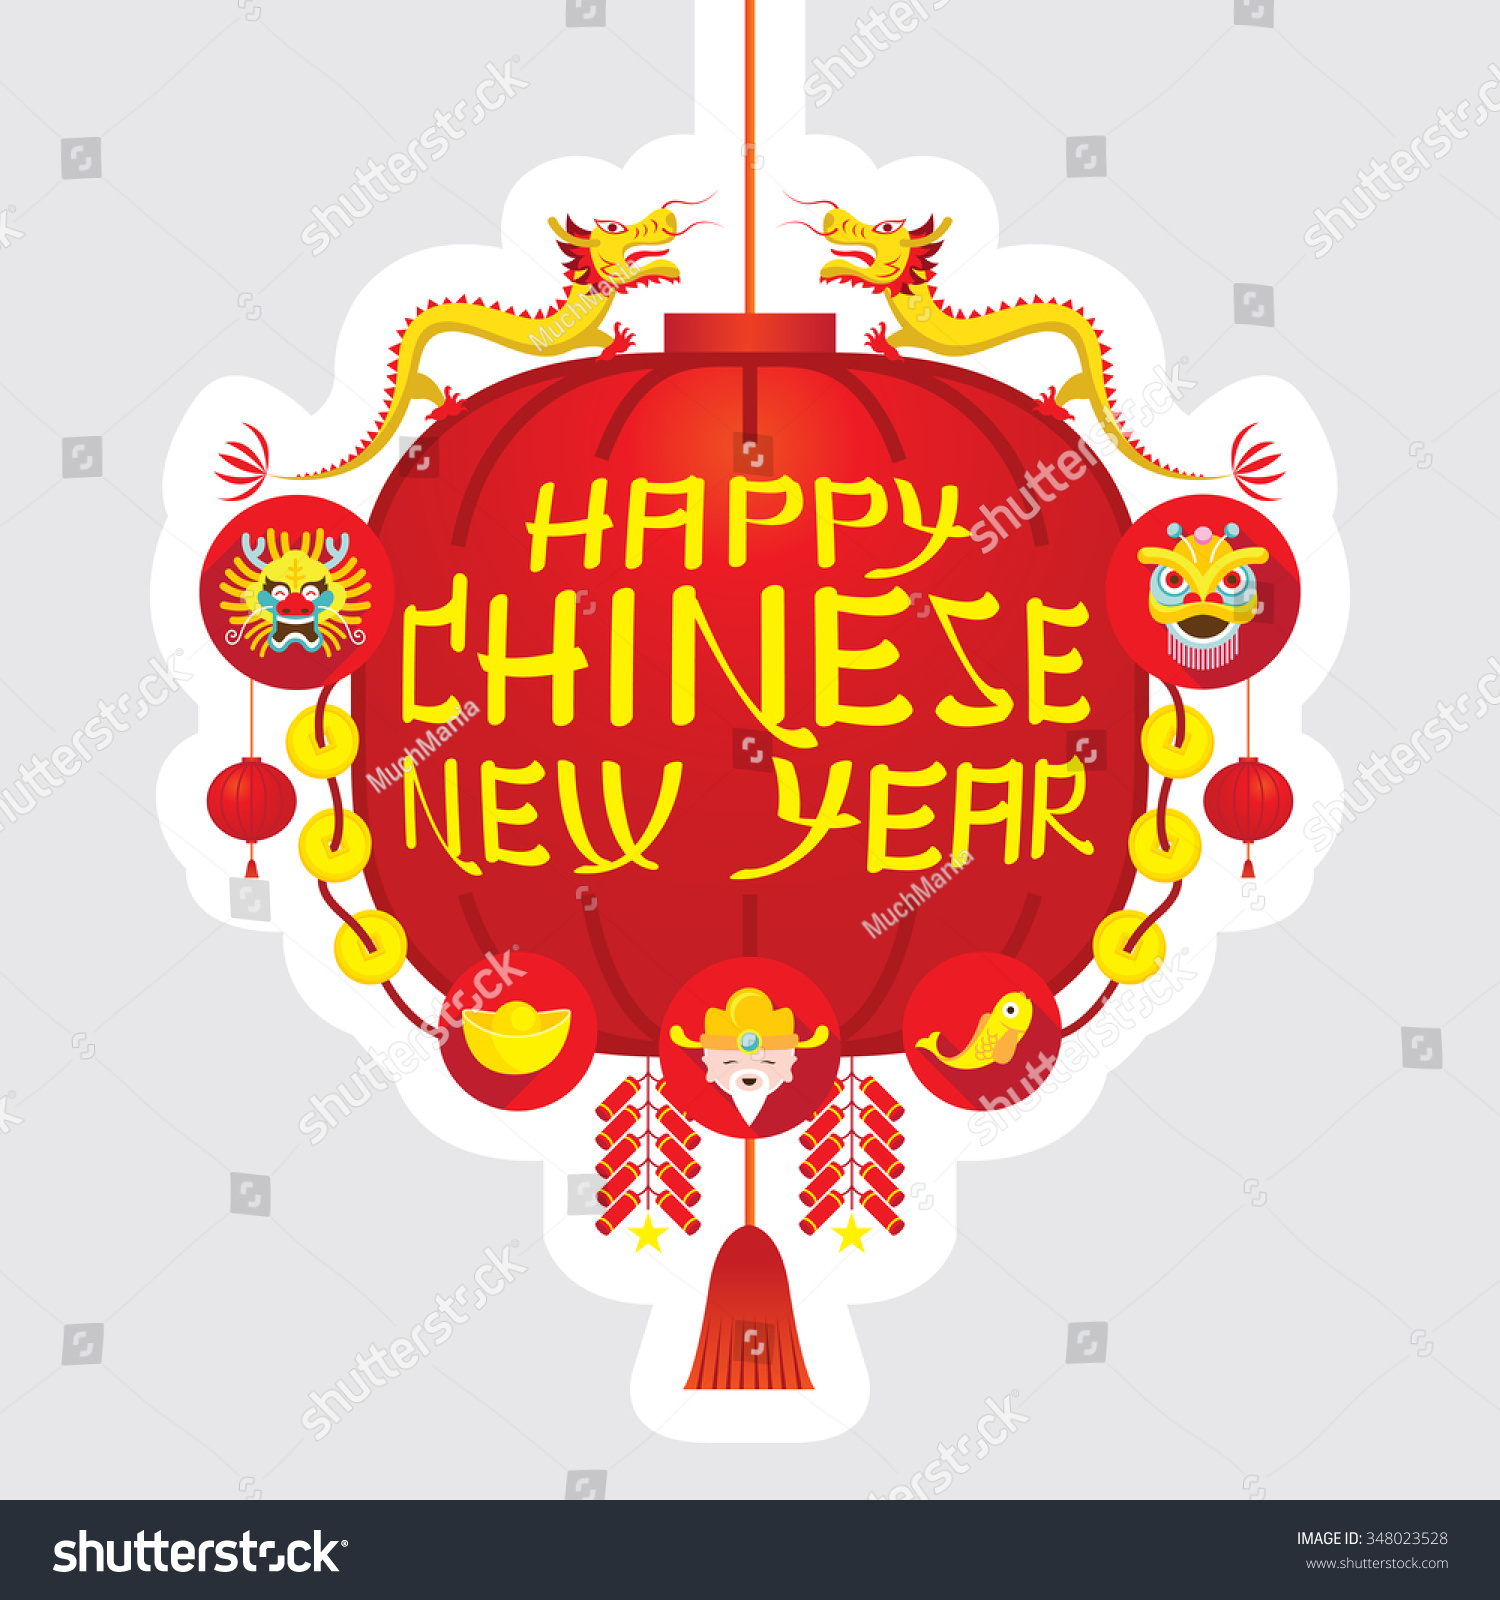 Chinese New Year Red Lantern Decoration Stock Vector ...